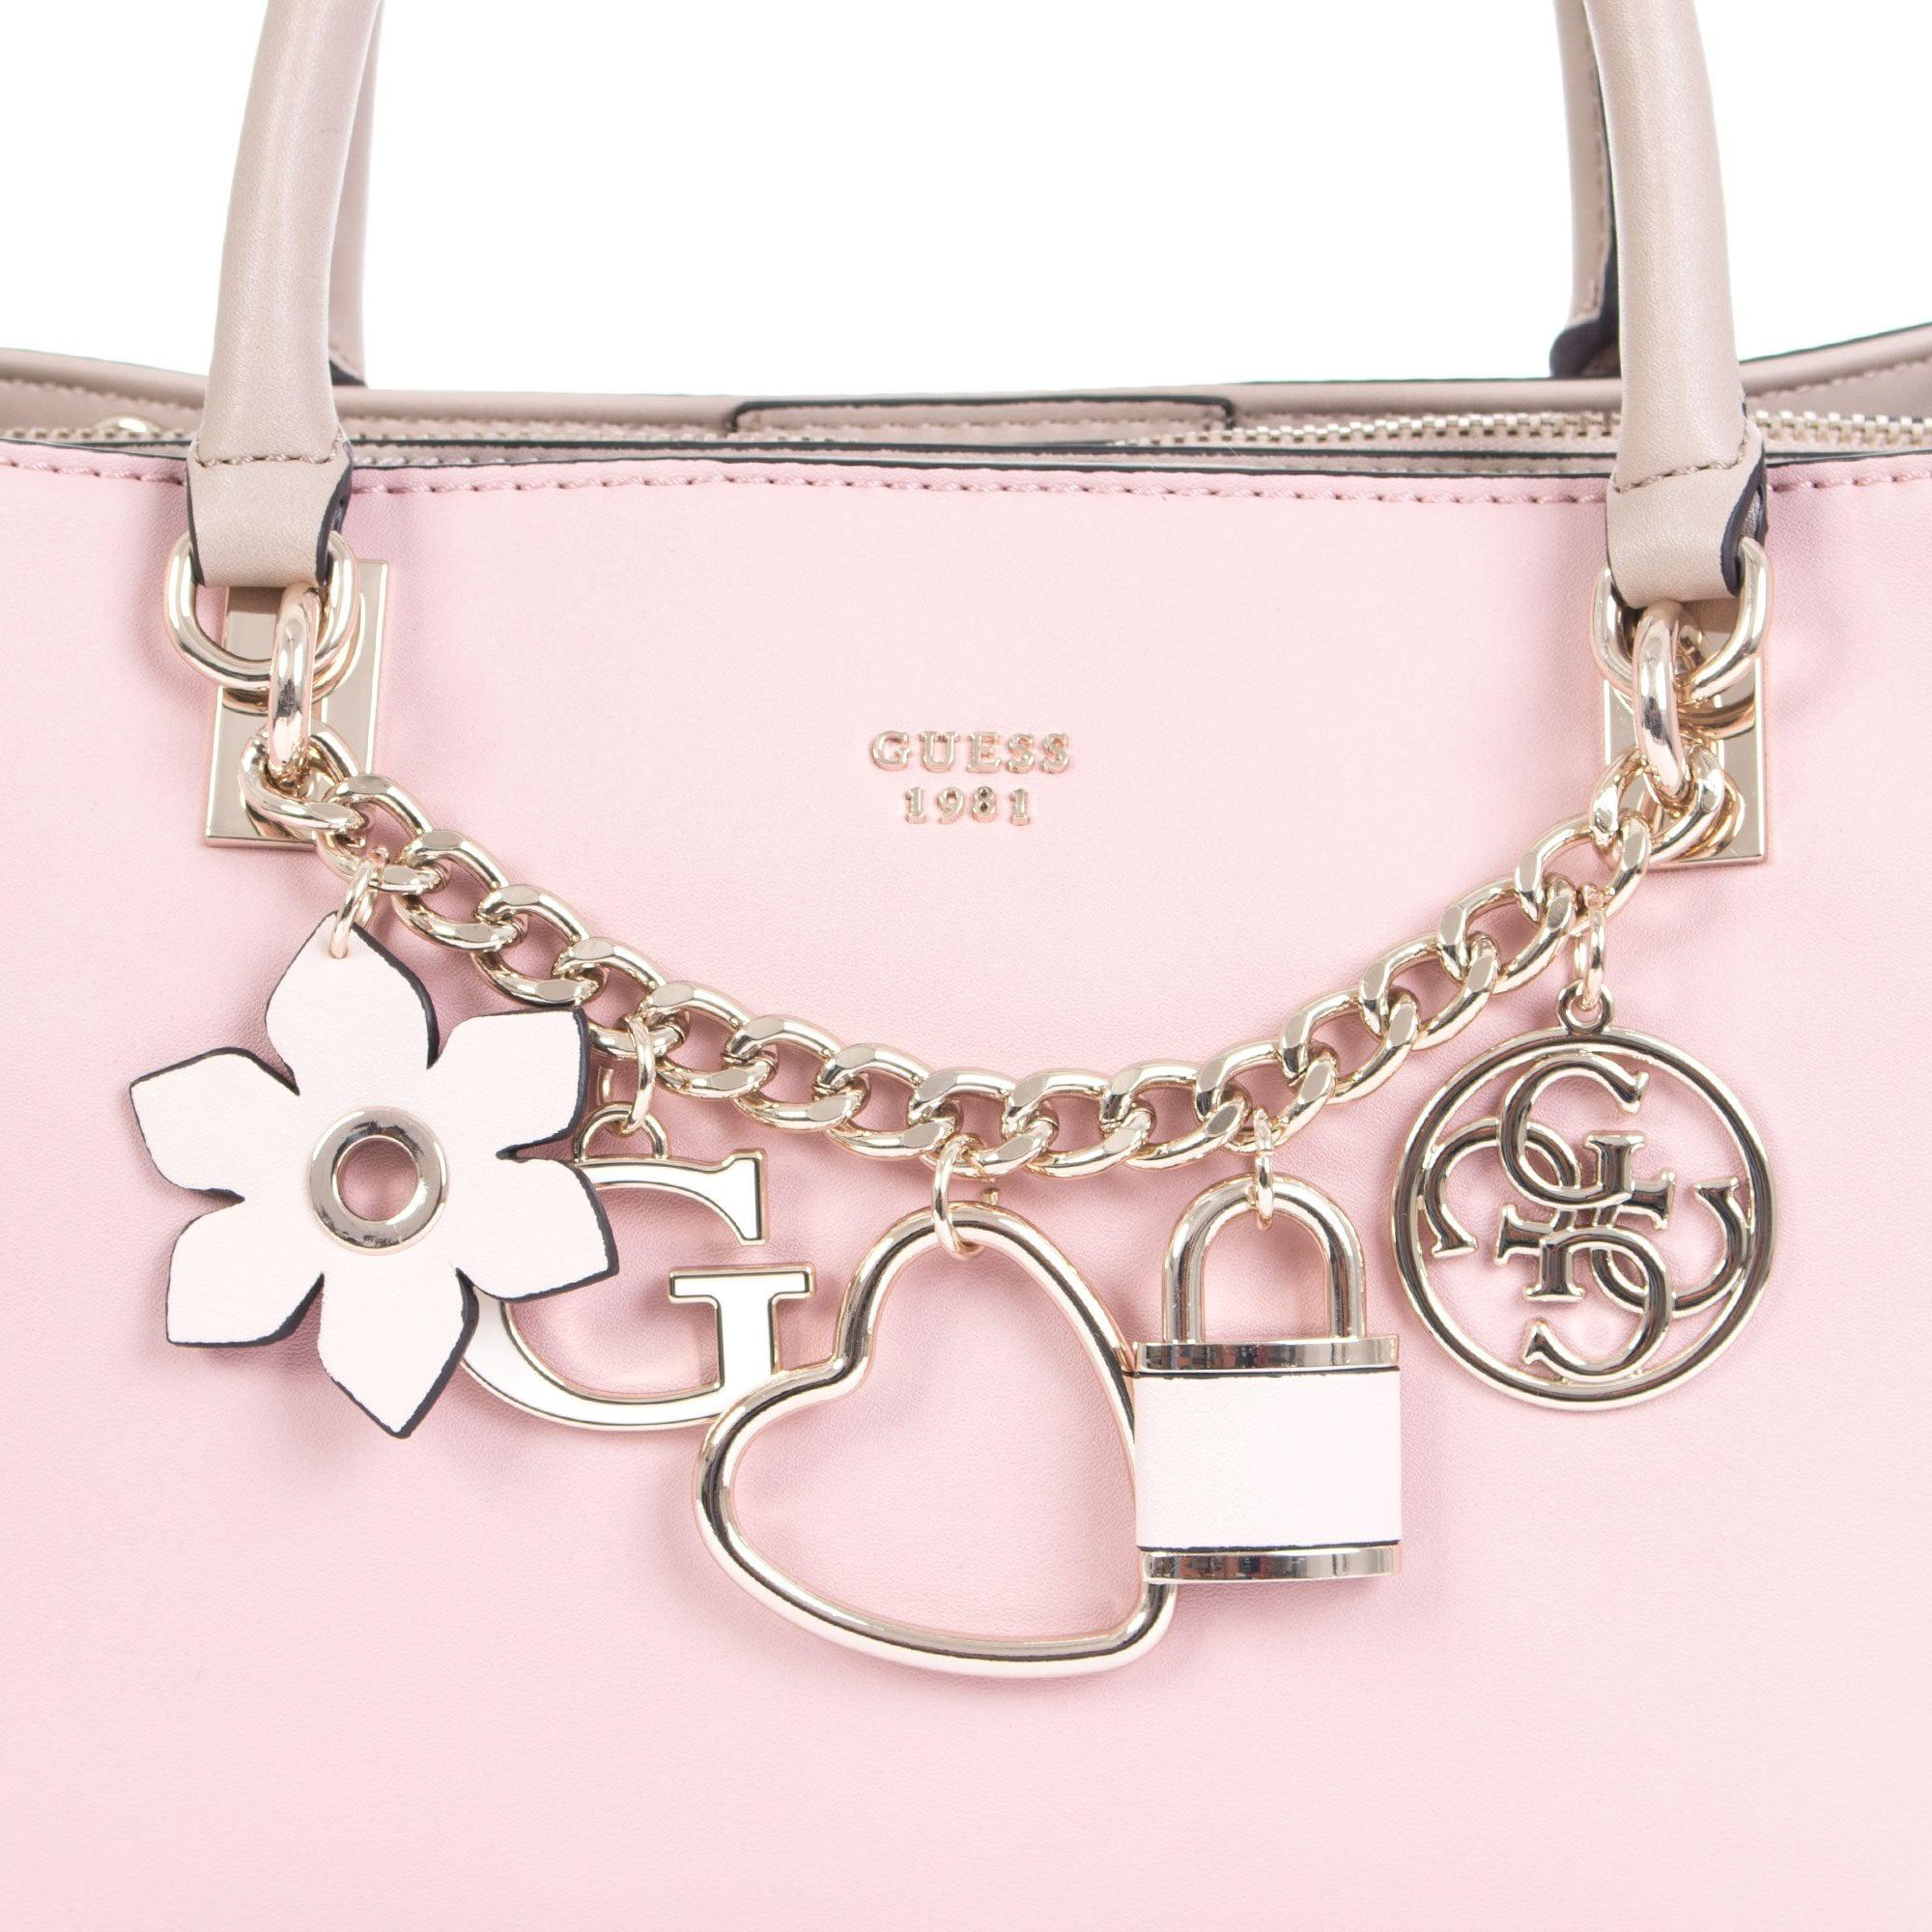 084d569972 Guess Hadley Multi Charm Tote in Pink - Lyst